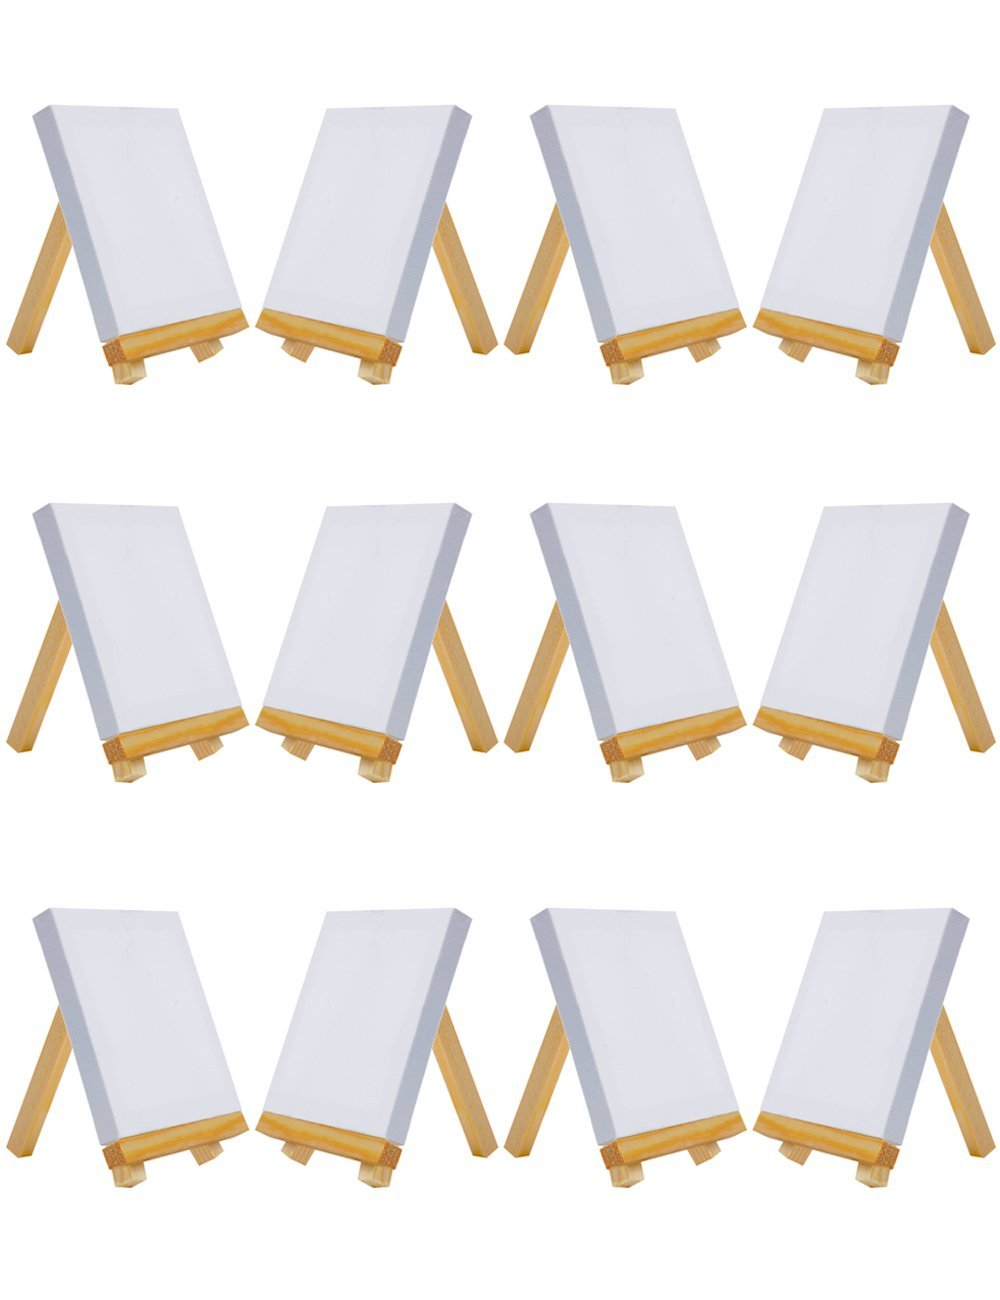 MEEDEN 12 PCS Mini Canvas & Easel Set Tiny Wood Easel For Painting Craft Drawing Decoration Supplies